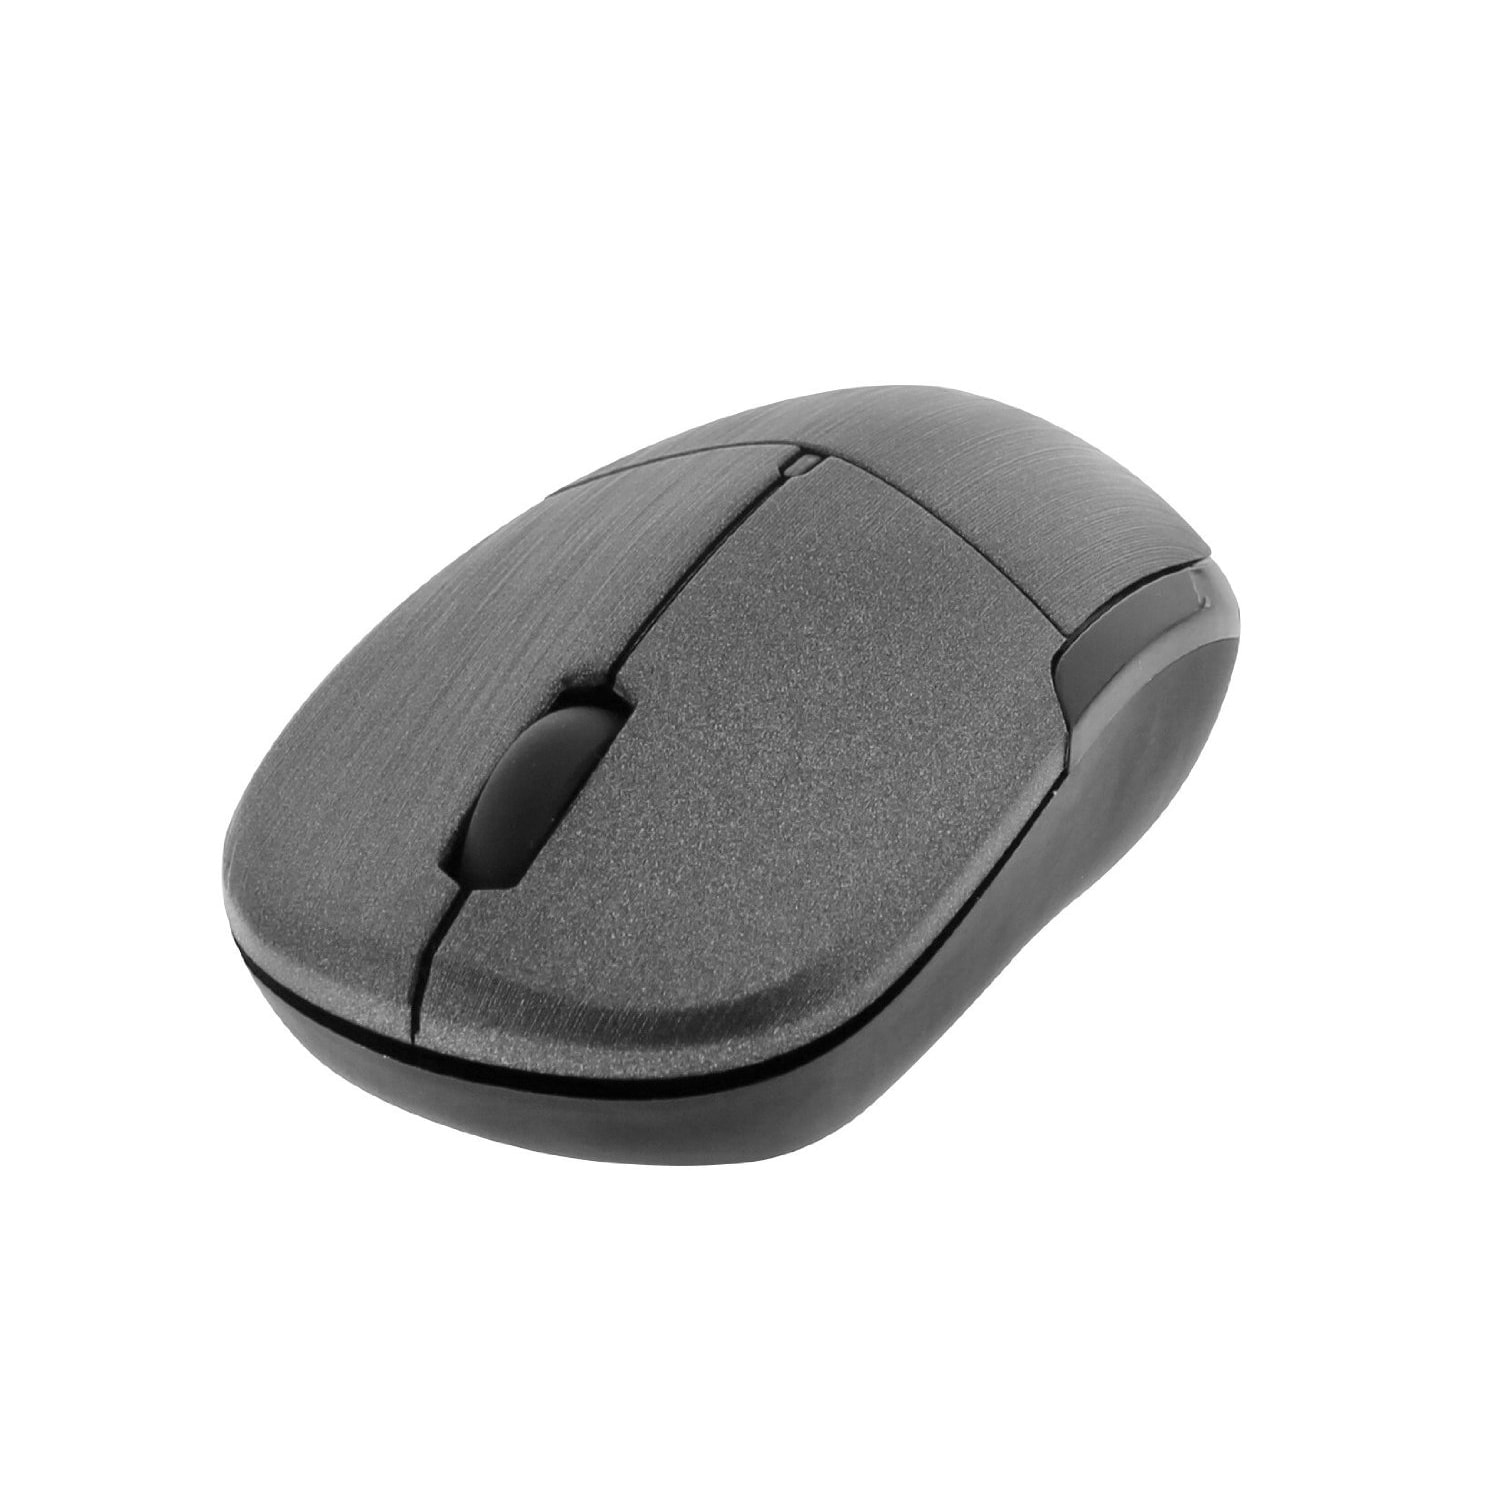 Souris PC T'nB MOOVE Bluetooth 3.0 - MWBTBK - 1